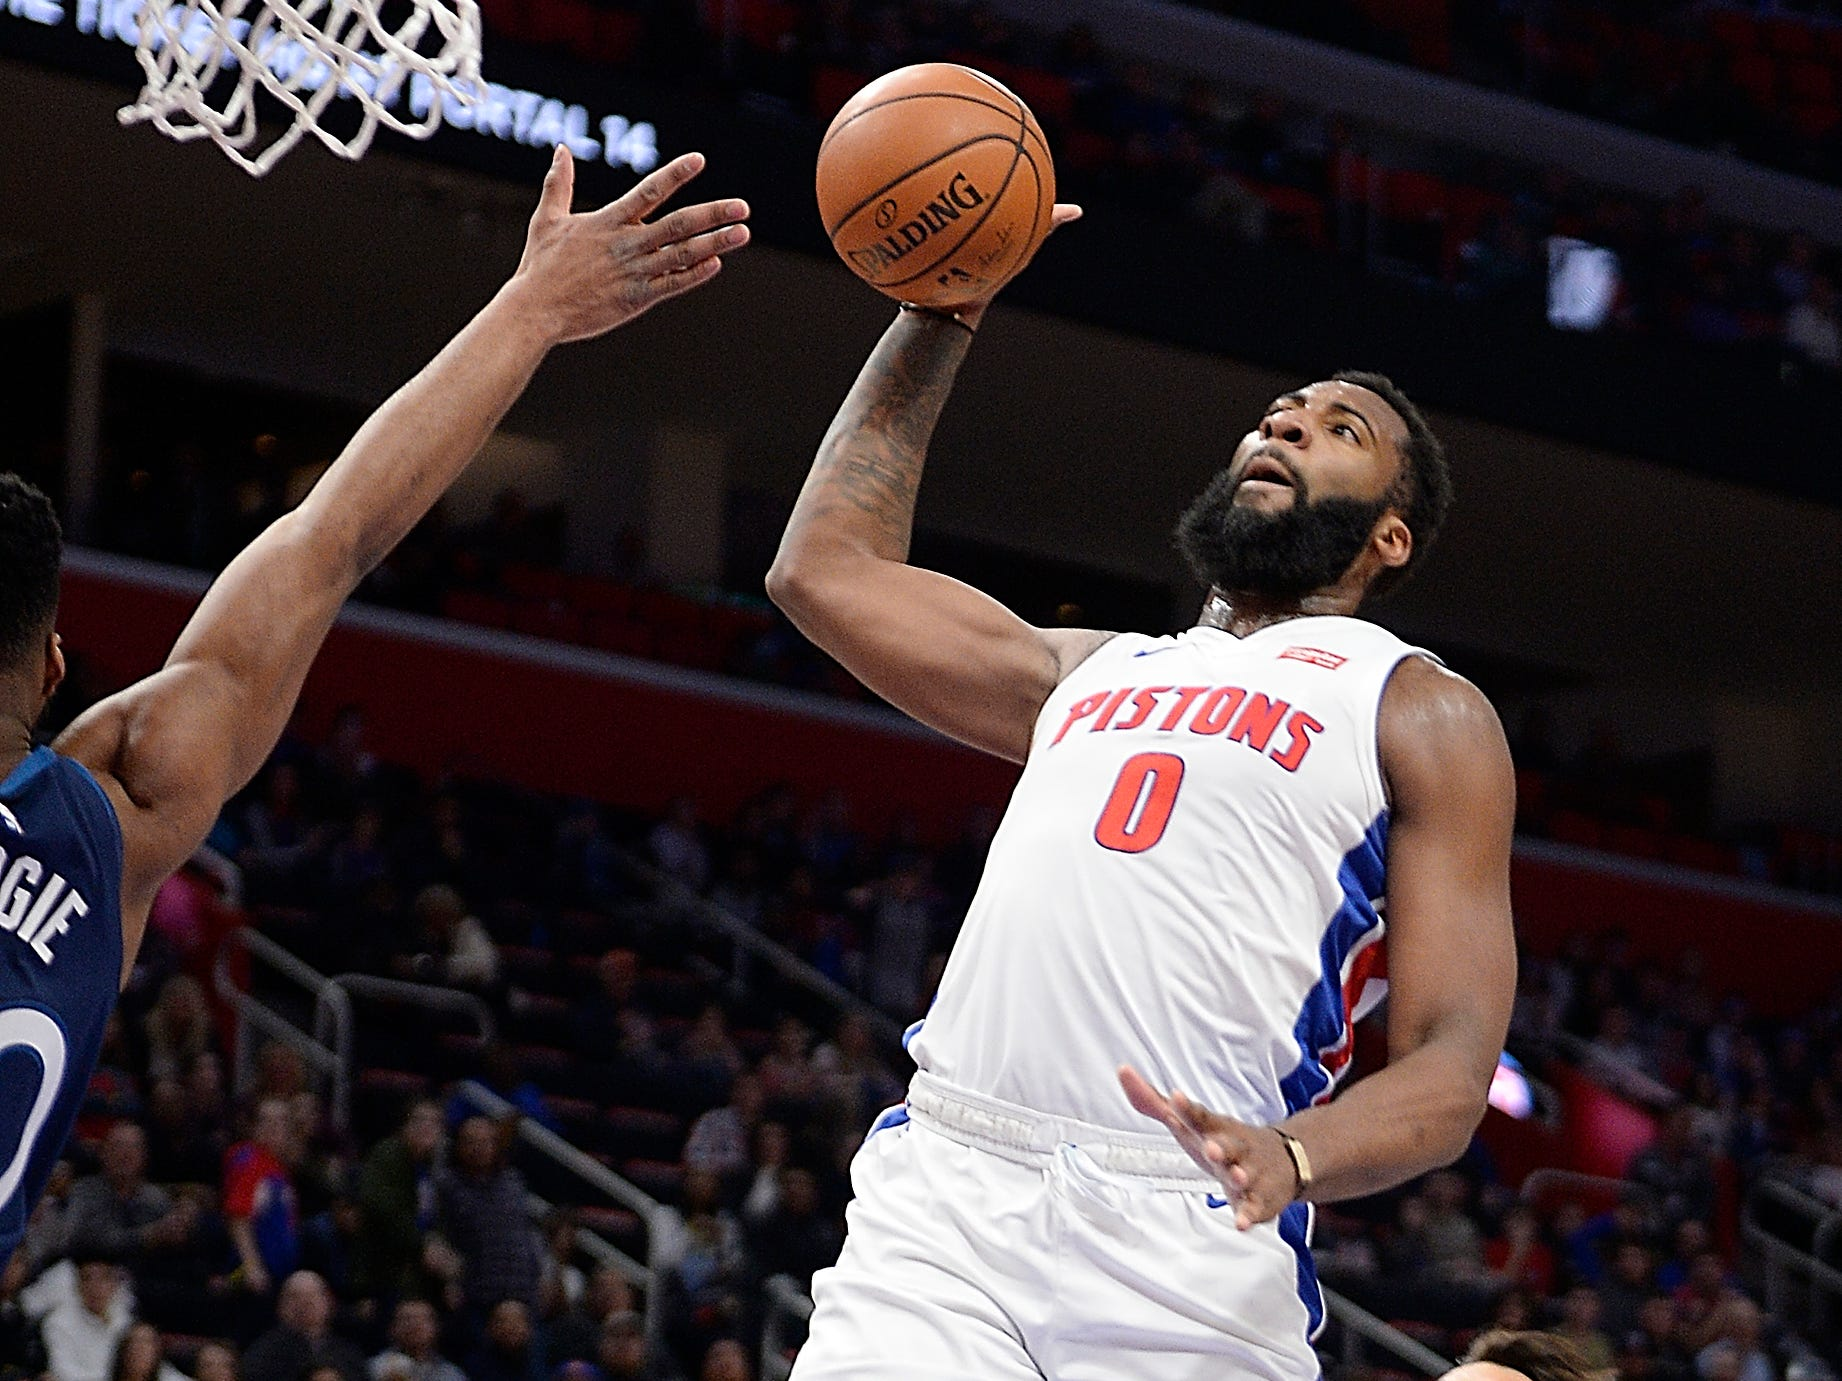 Pistons' Andre Drummond dunks over Timberwolves' l-r, Josh Okogie and Dario Saric in the second quarter. Drummond had 31 points and 15 rebounds.